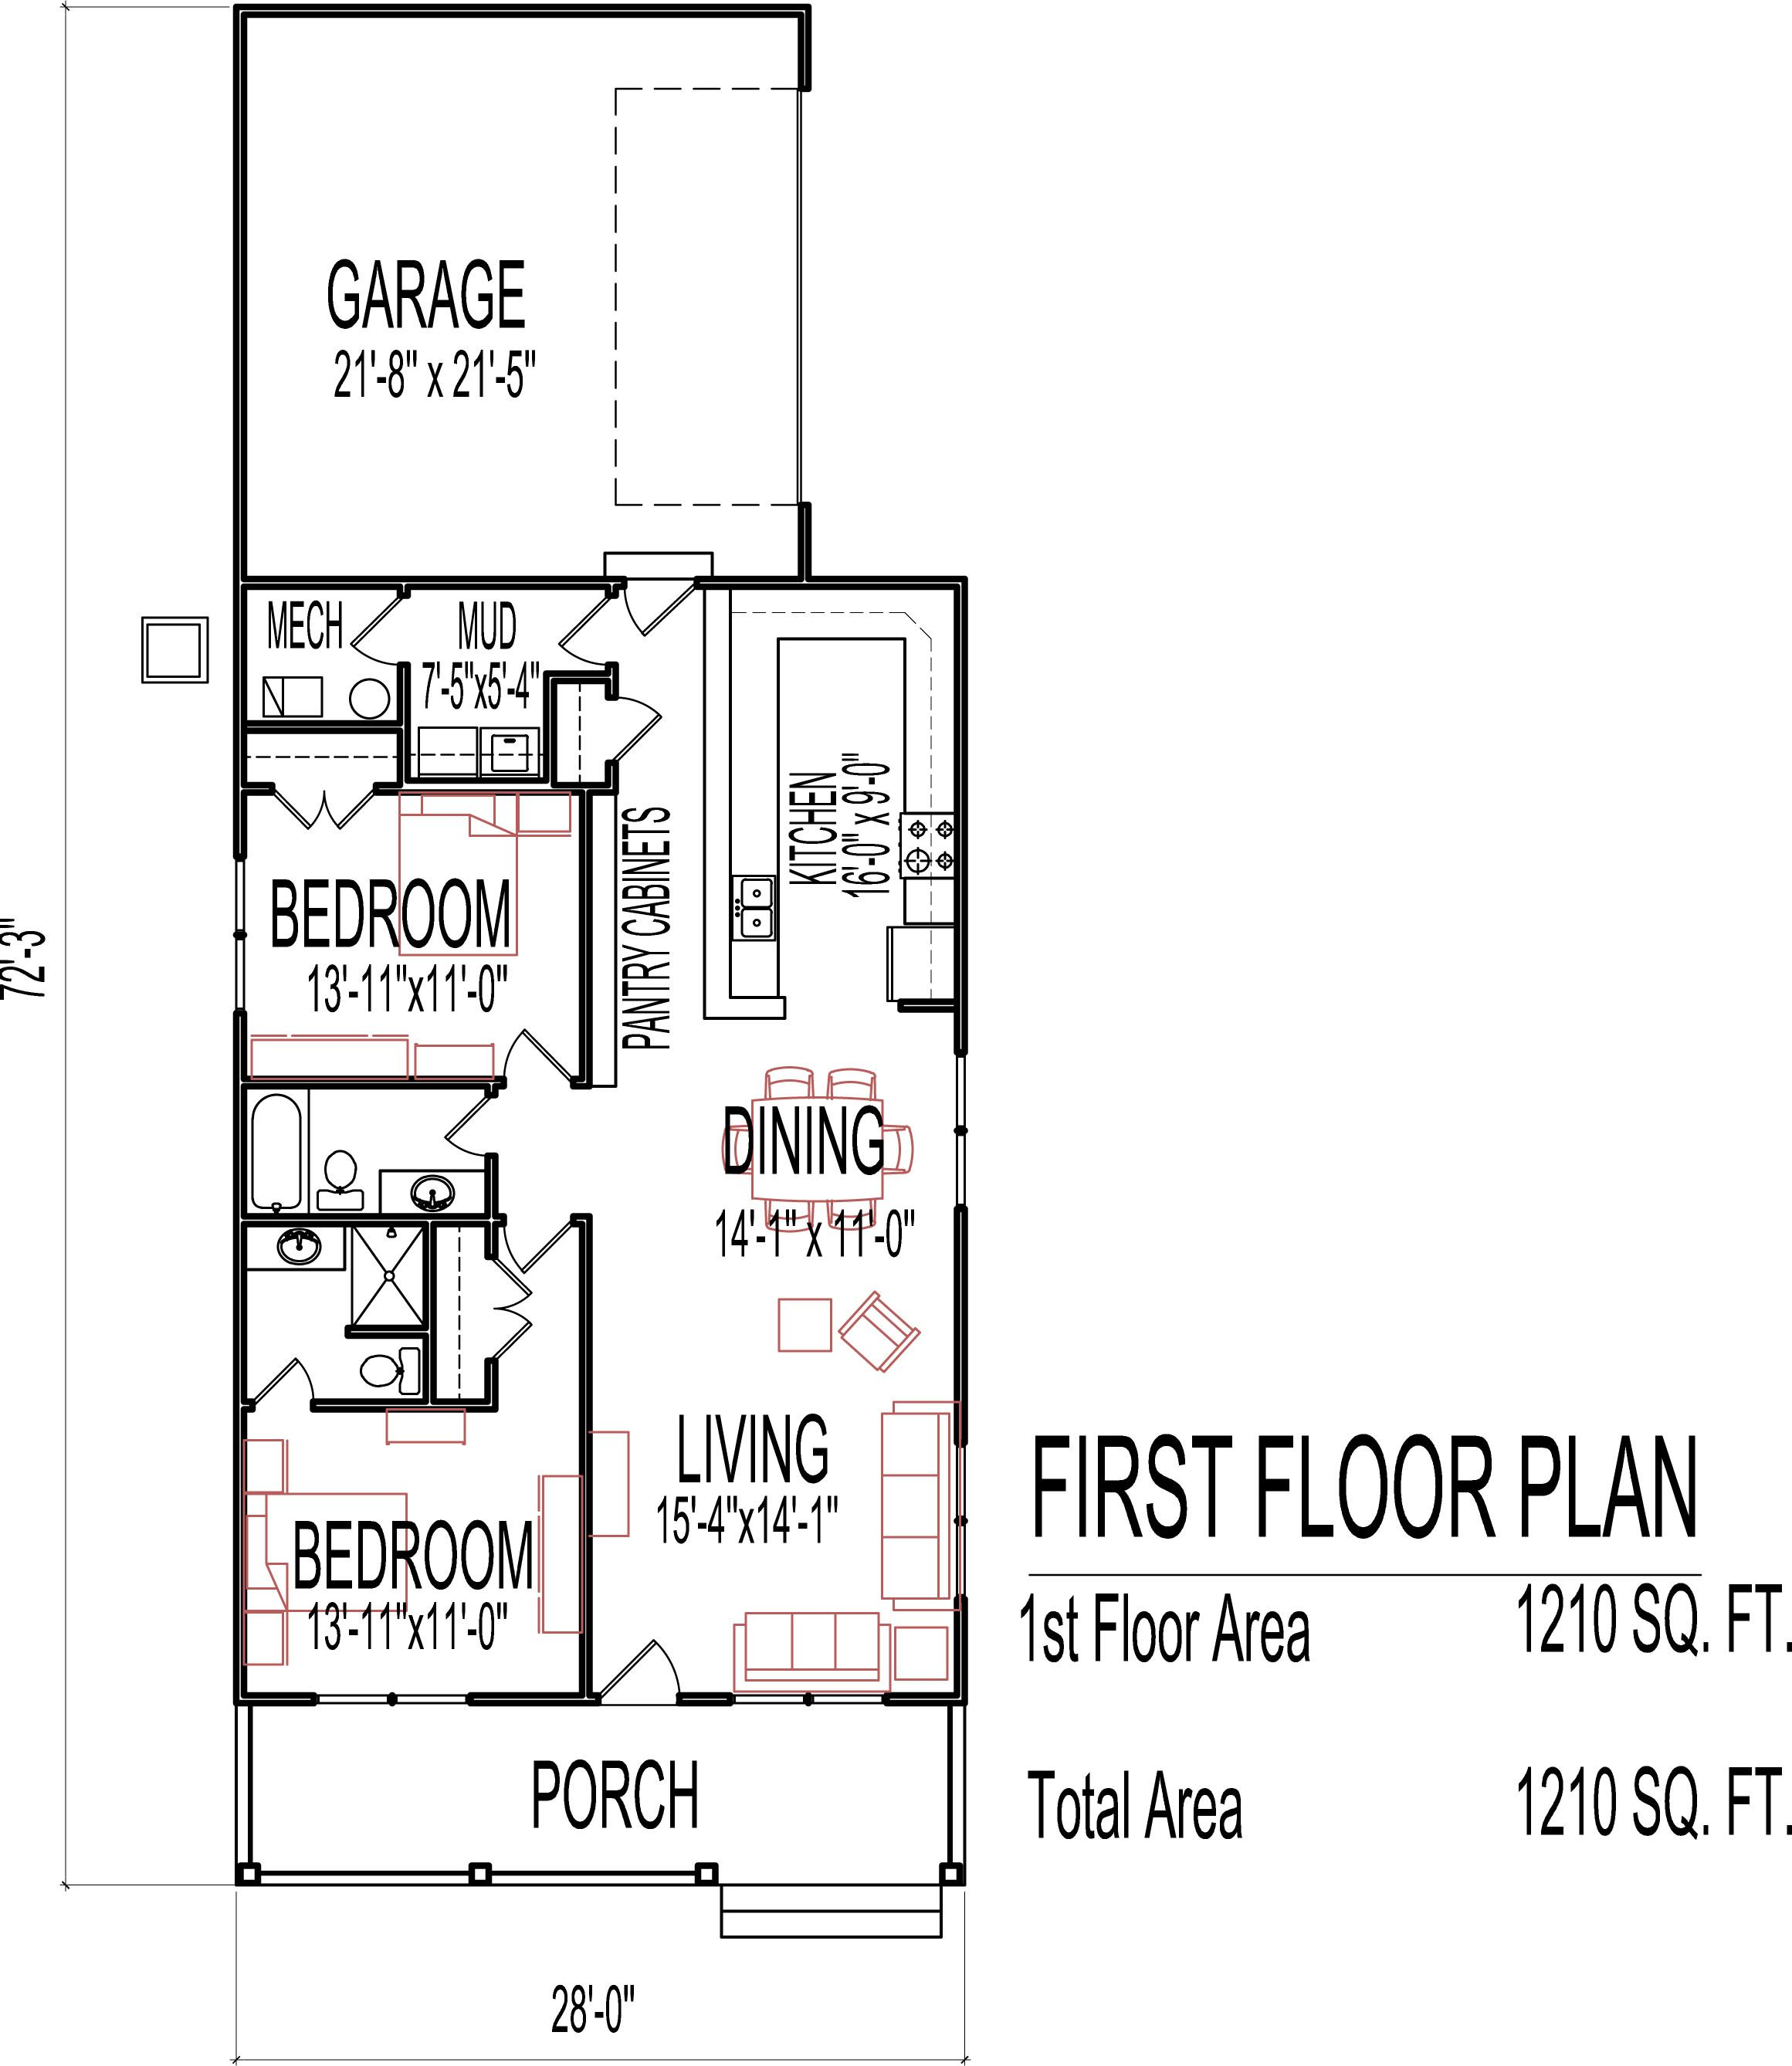 Small low cost economical 2 bedroom 2 bath 1200 sq ft for 1 bed 1 bath house plans